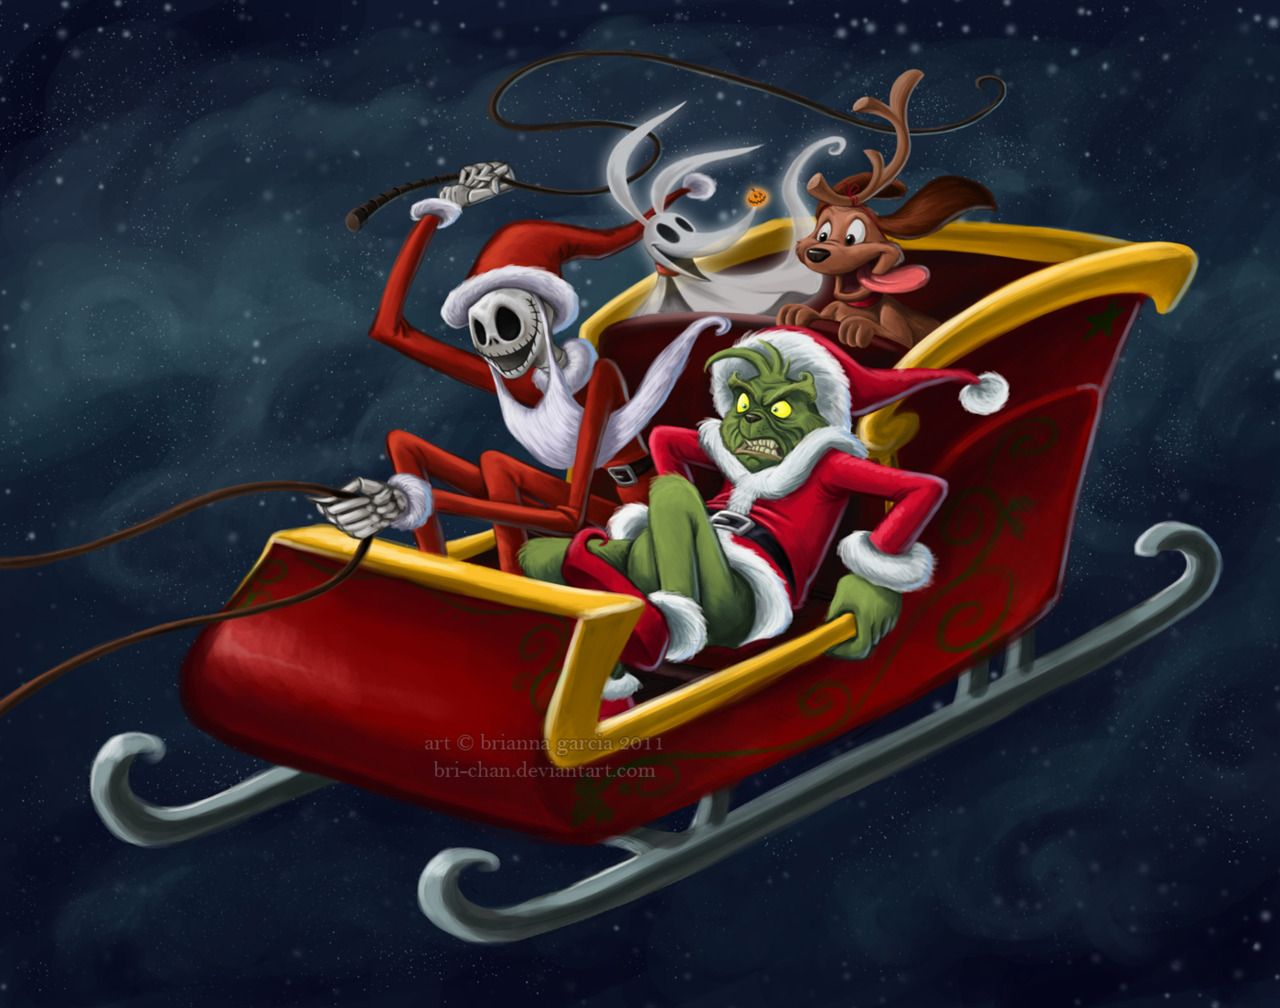 Jack Skeleton And The Grinch The Worst Santas In The History Of Forever Nightmare Before Christmas Wallpaper Nightmare Before Christmas Jack Skellington